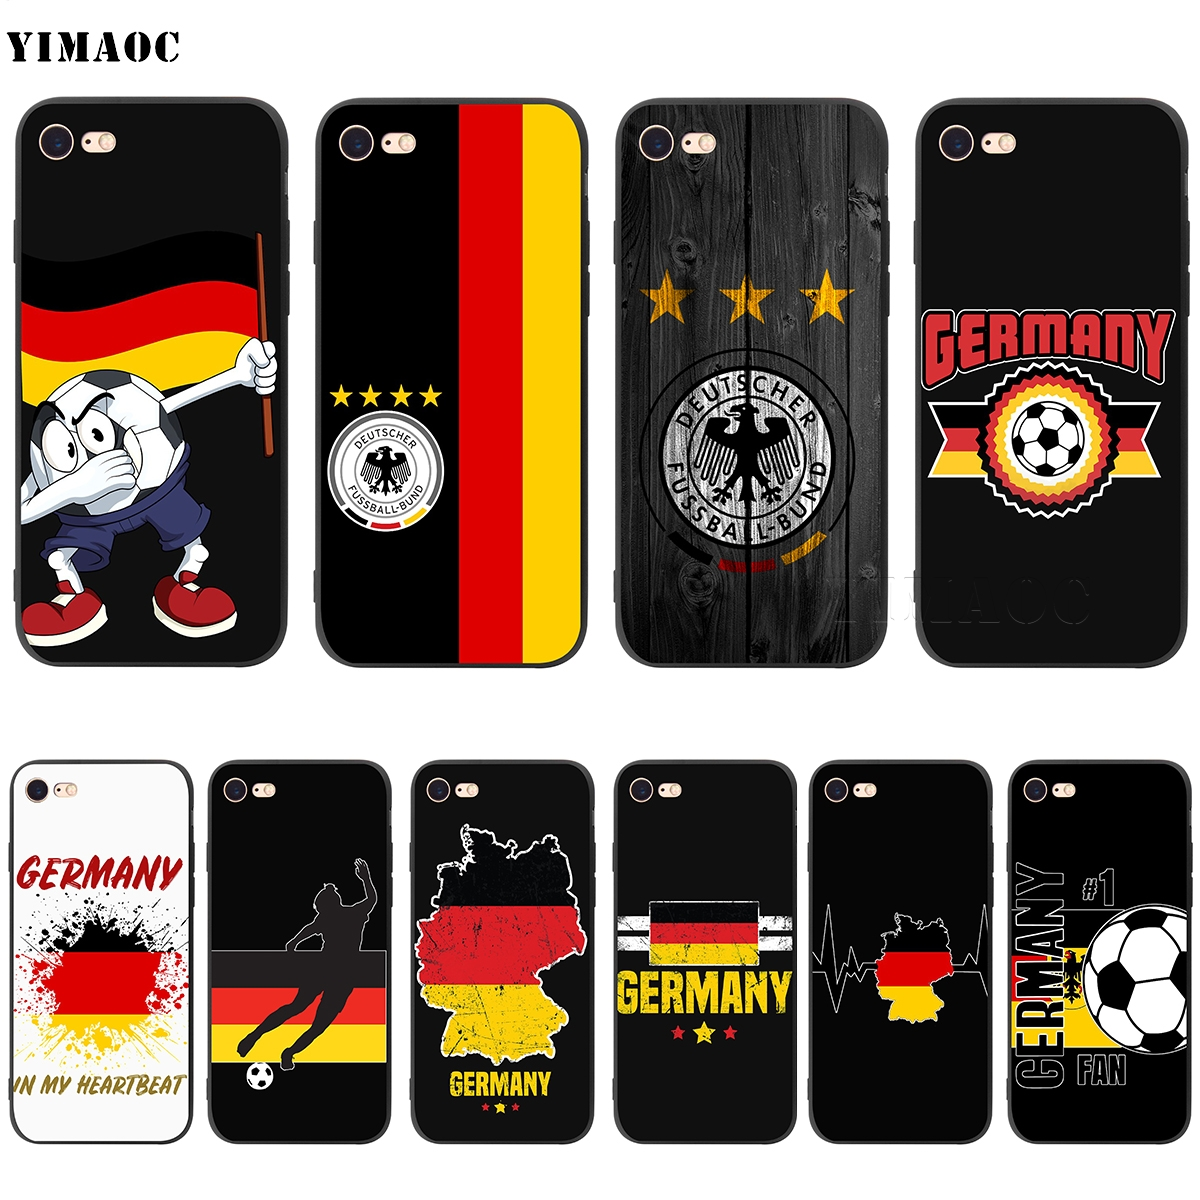 YIMAOC Germany Soccer Soft Silicone Case for iPhone 5 5s SE 6 6s 7 8 Plus X